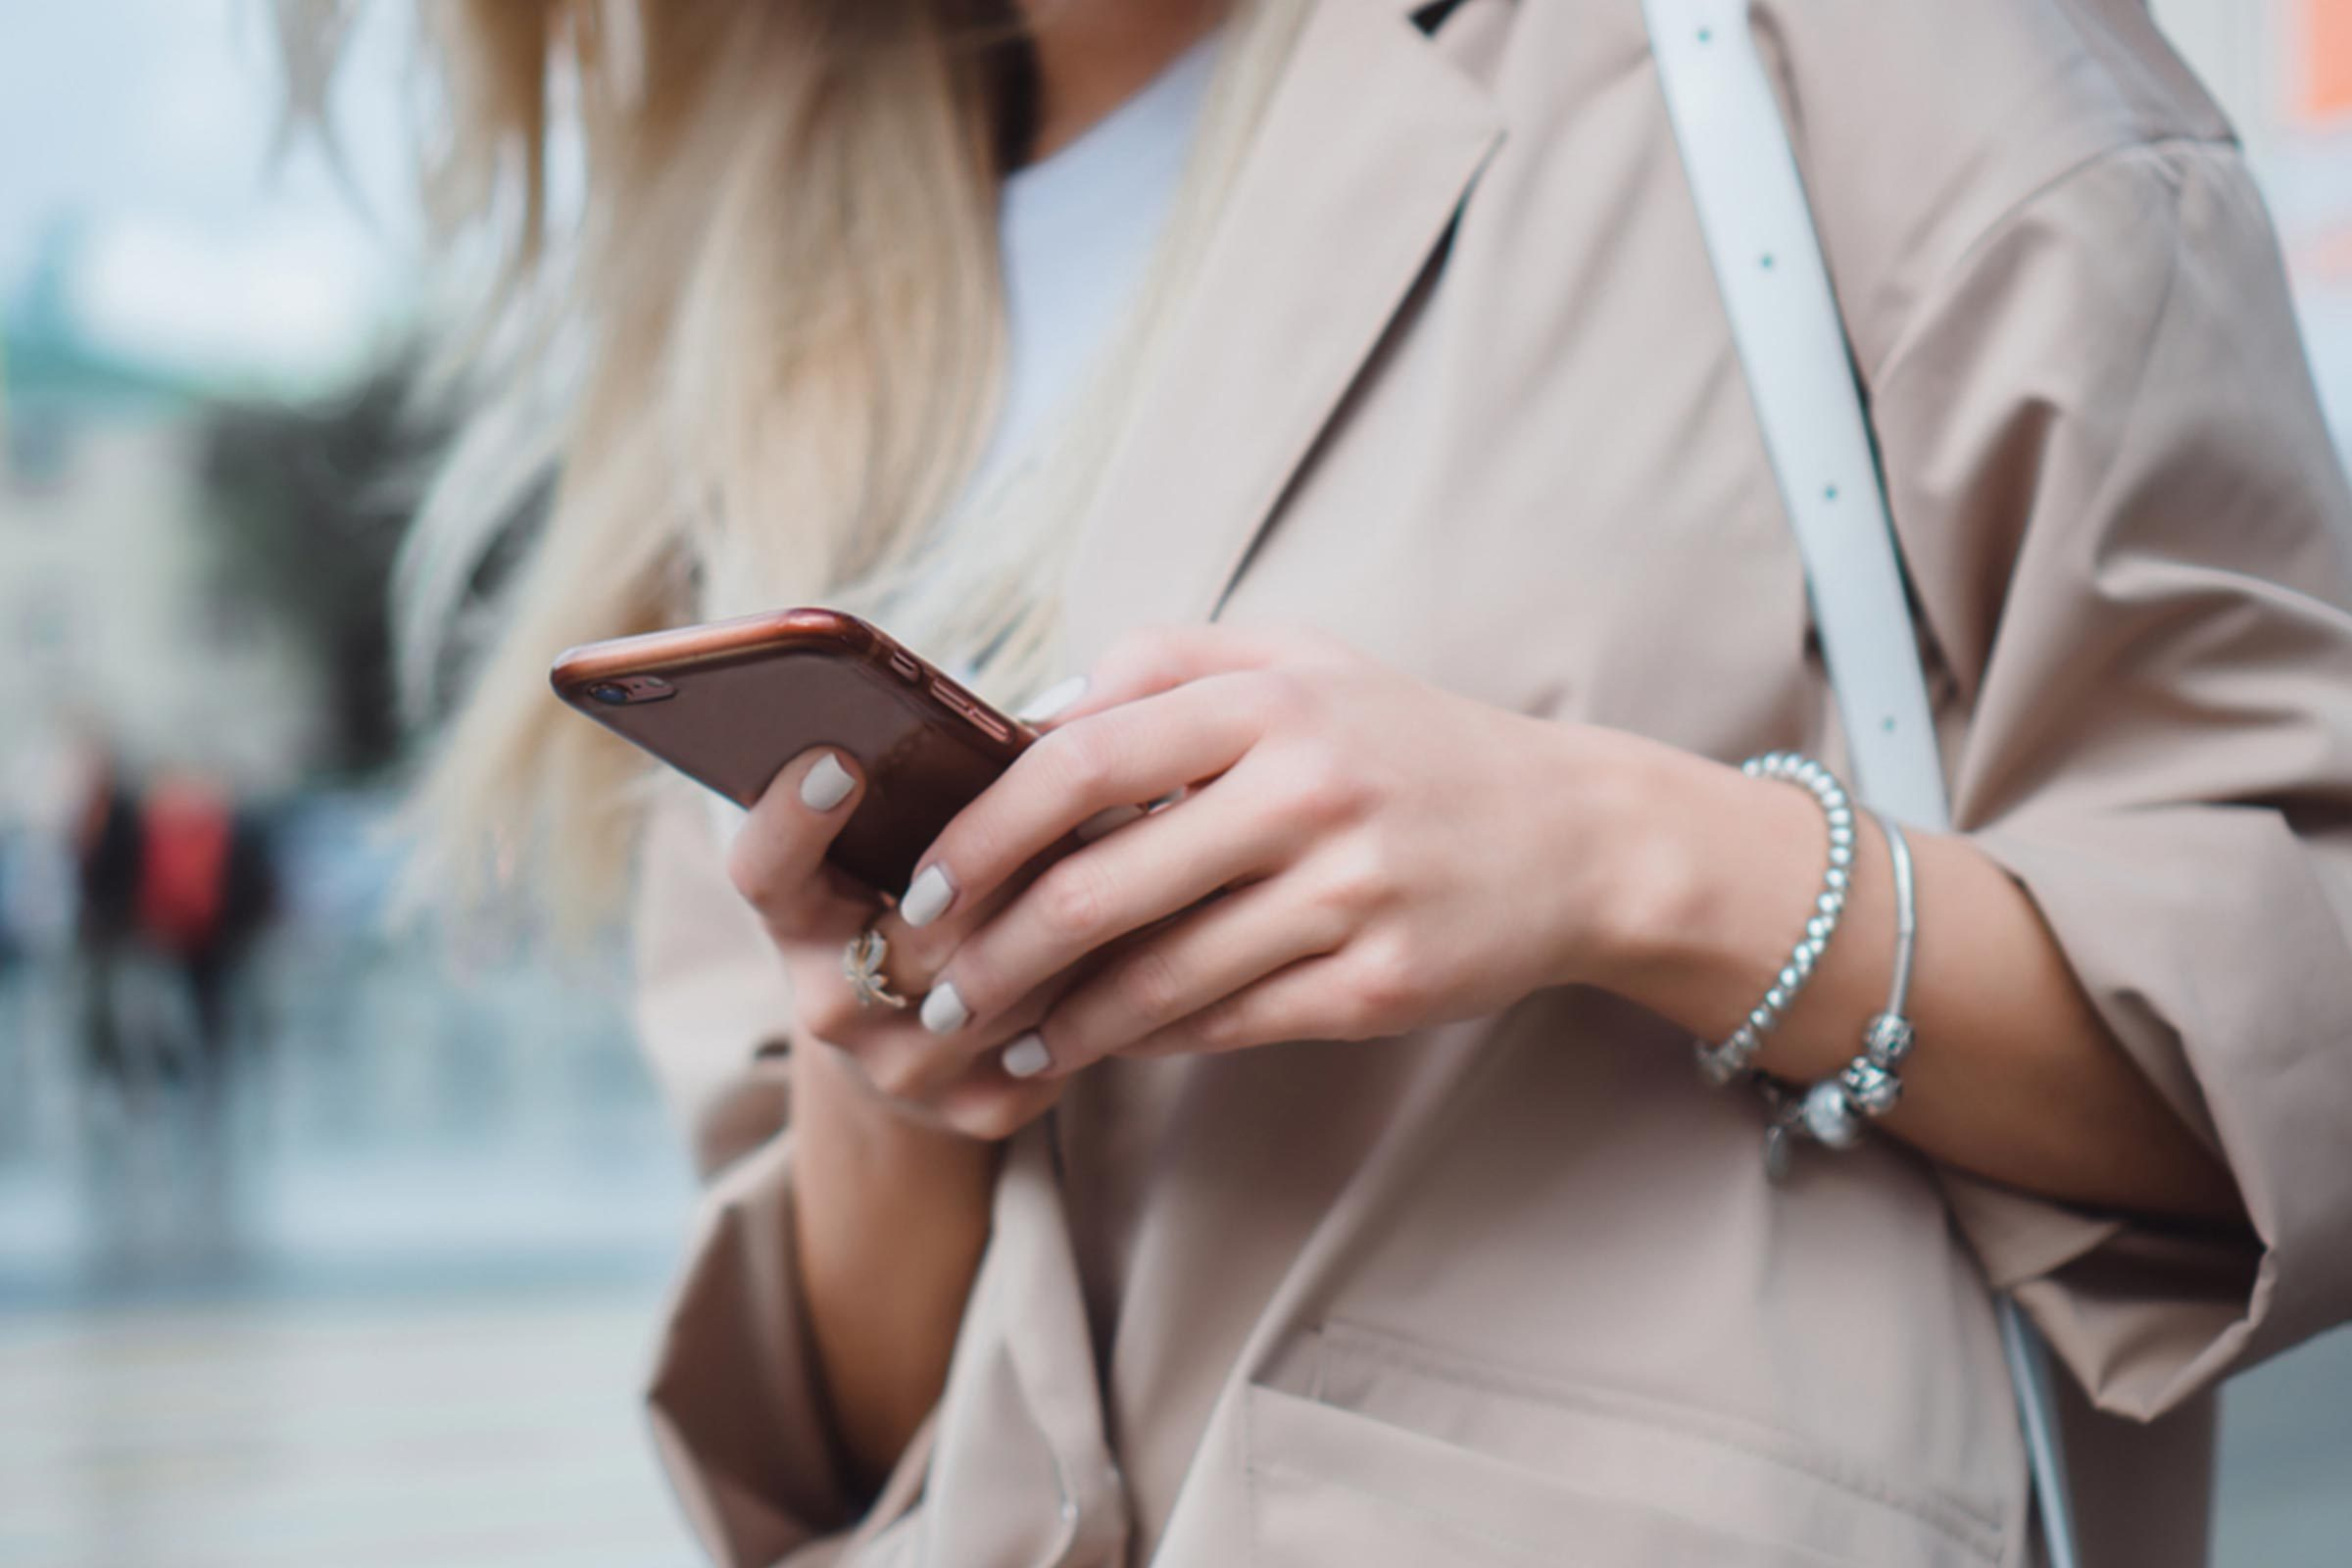 10 Group Texting Etiquette Rules Everyone Should Follow